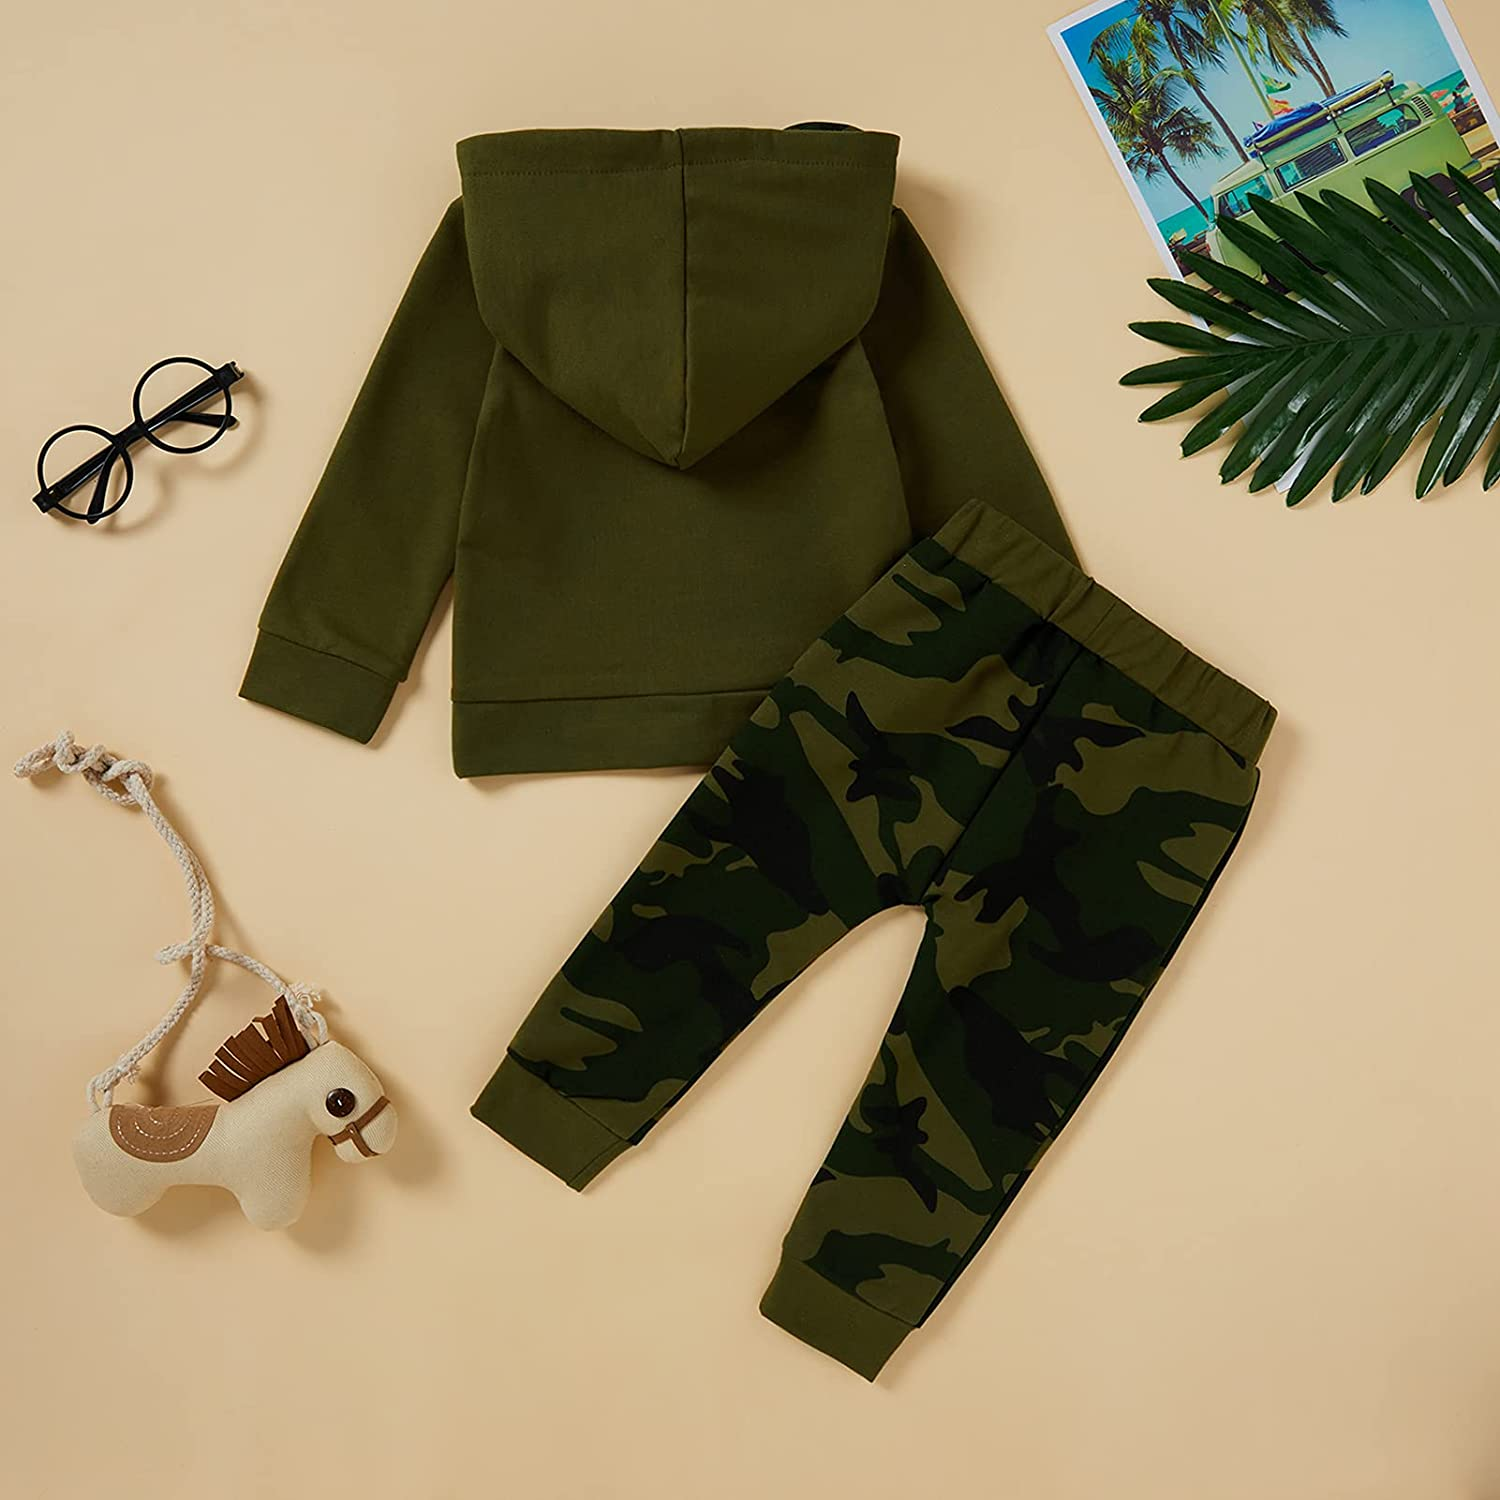 Toddler Boy Clothes Baby Boys Hoodies Letter Printed Tops Camouflage Leggings Pants Autumn Winter Outfits